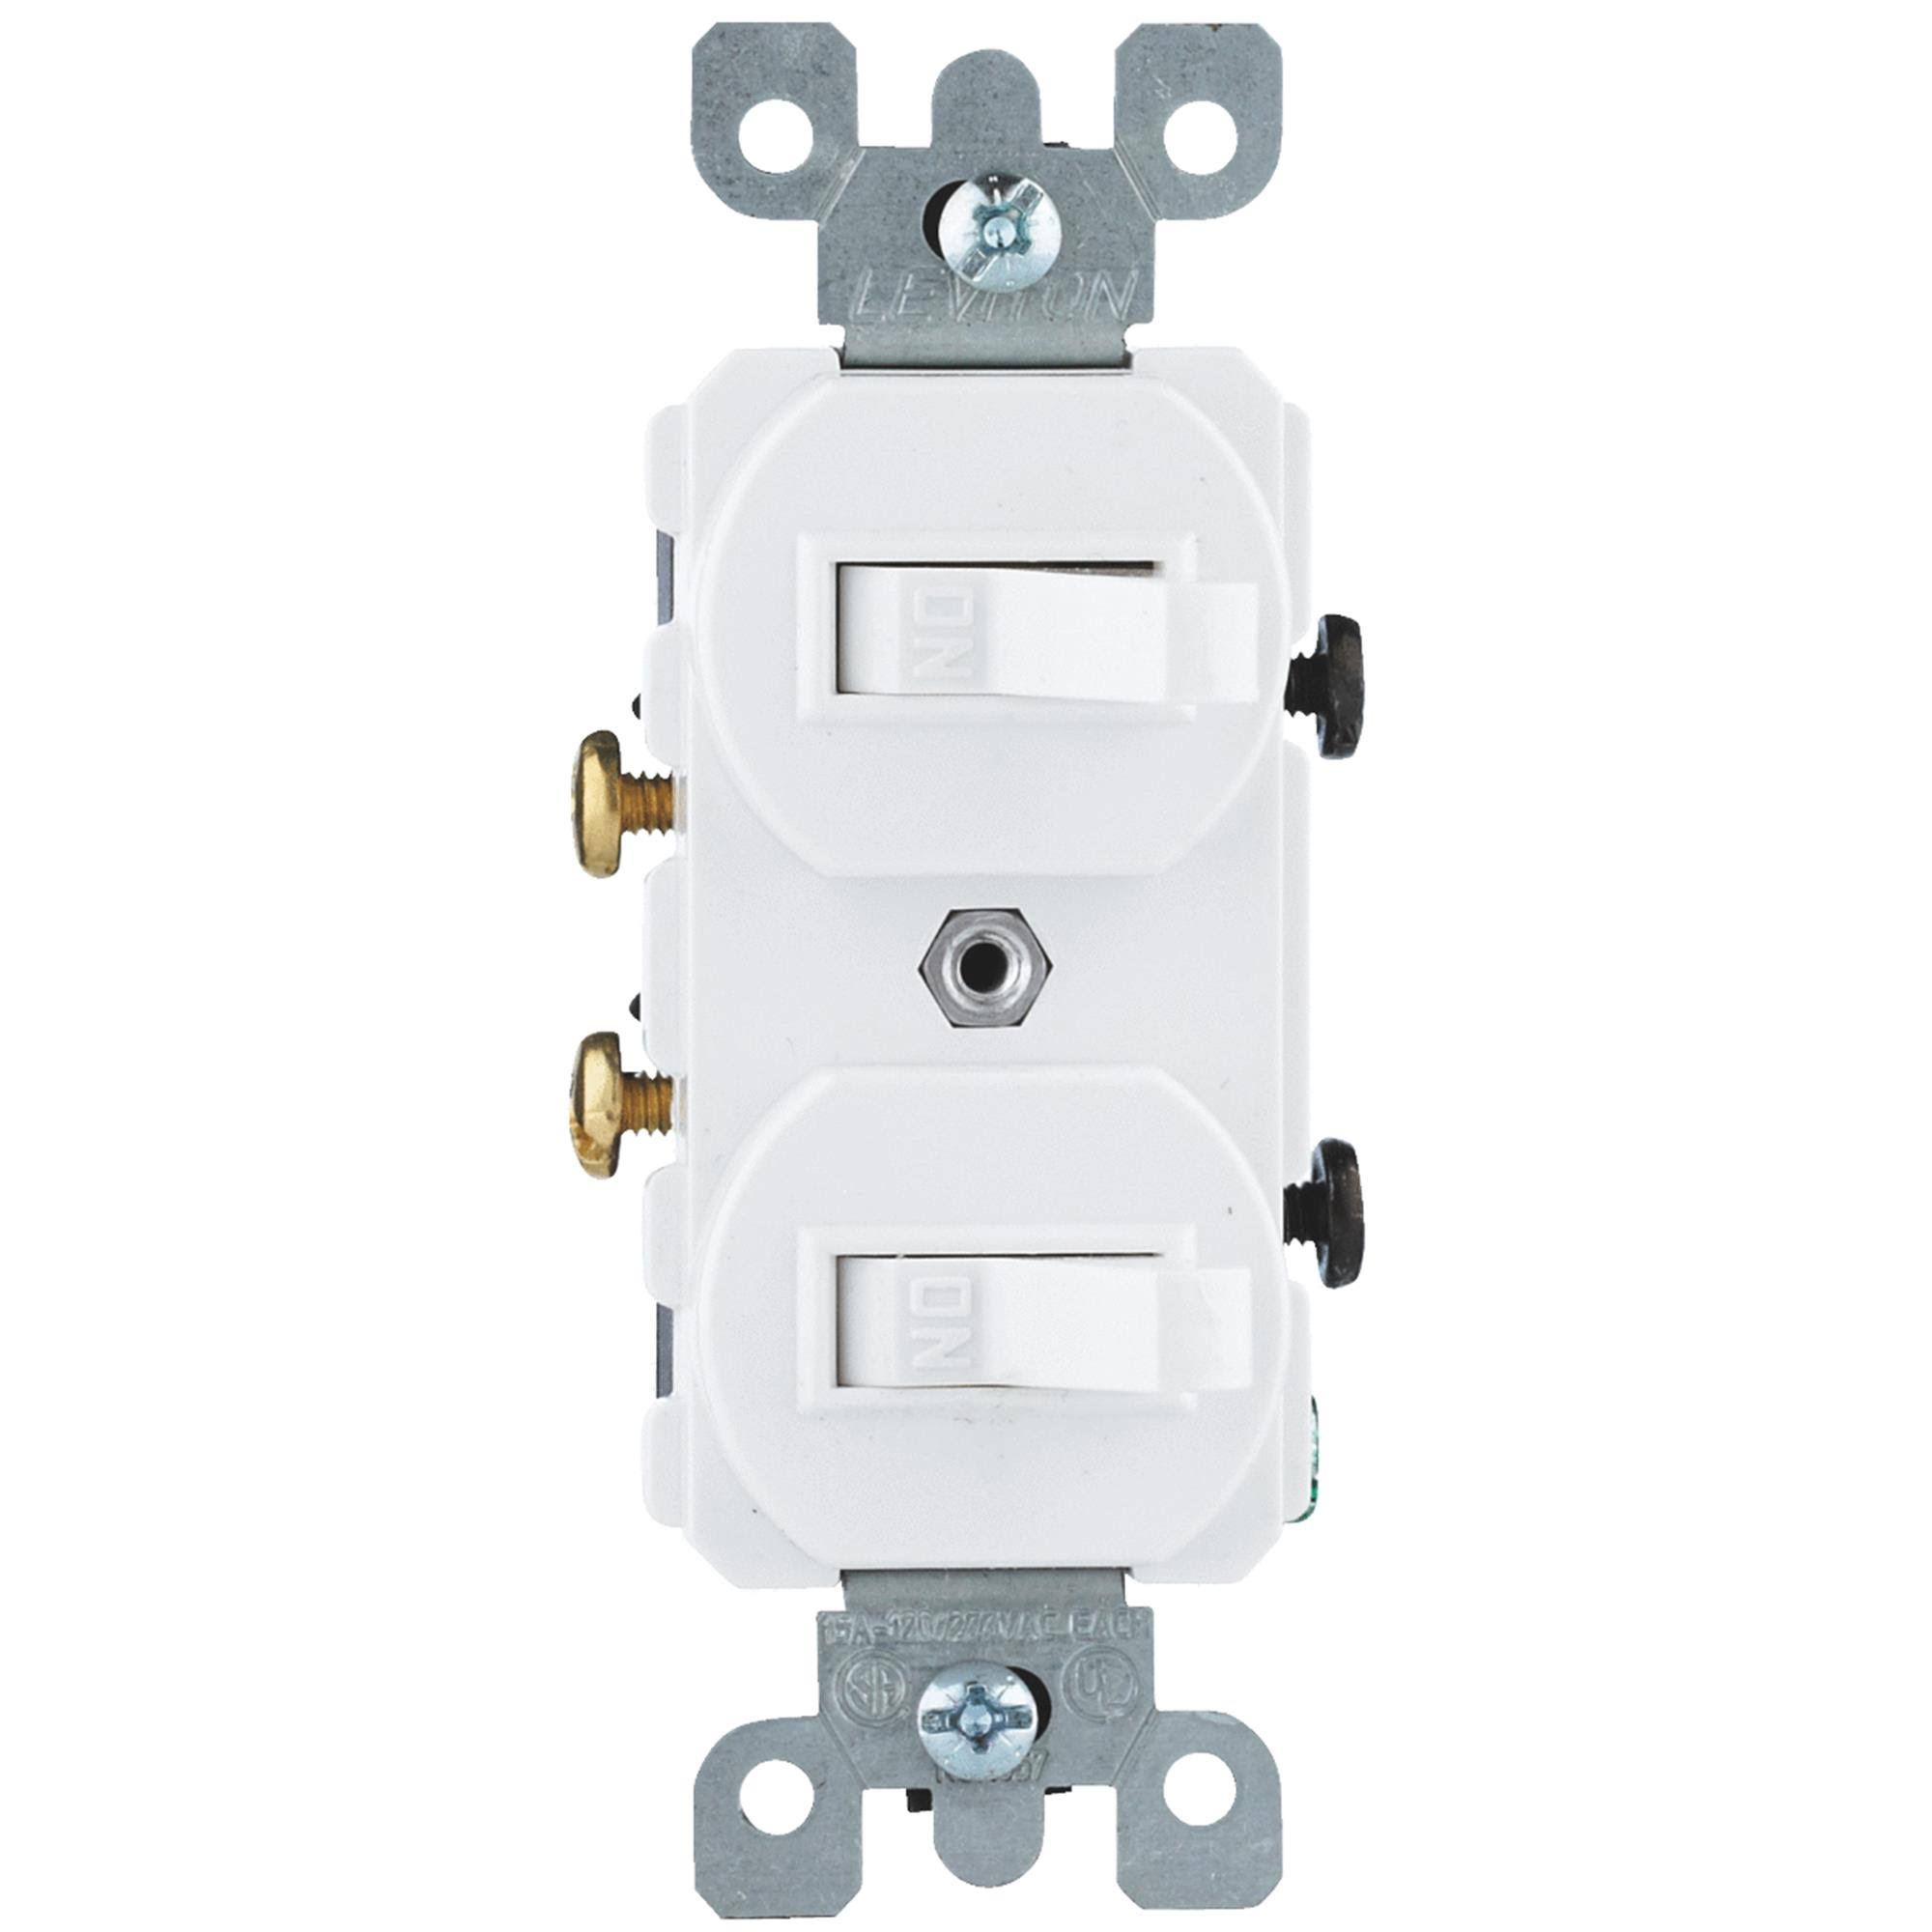 Leviton Combination Dual Toggle Switch - White, 15amp